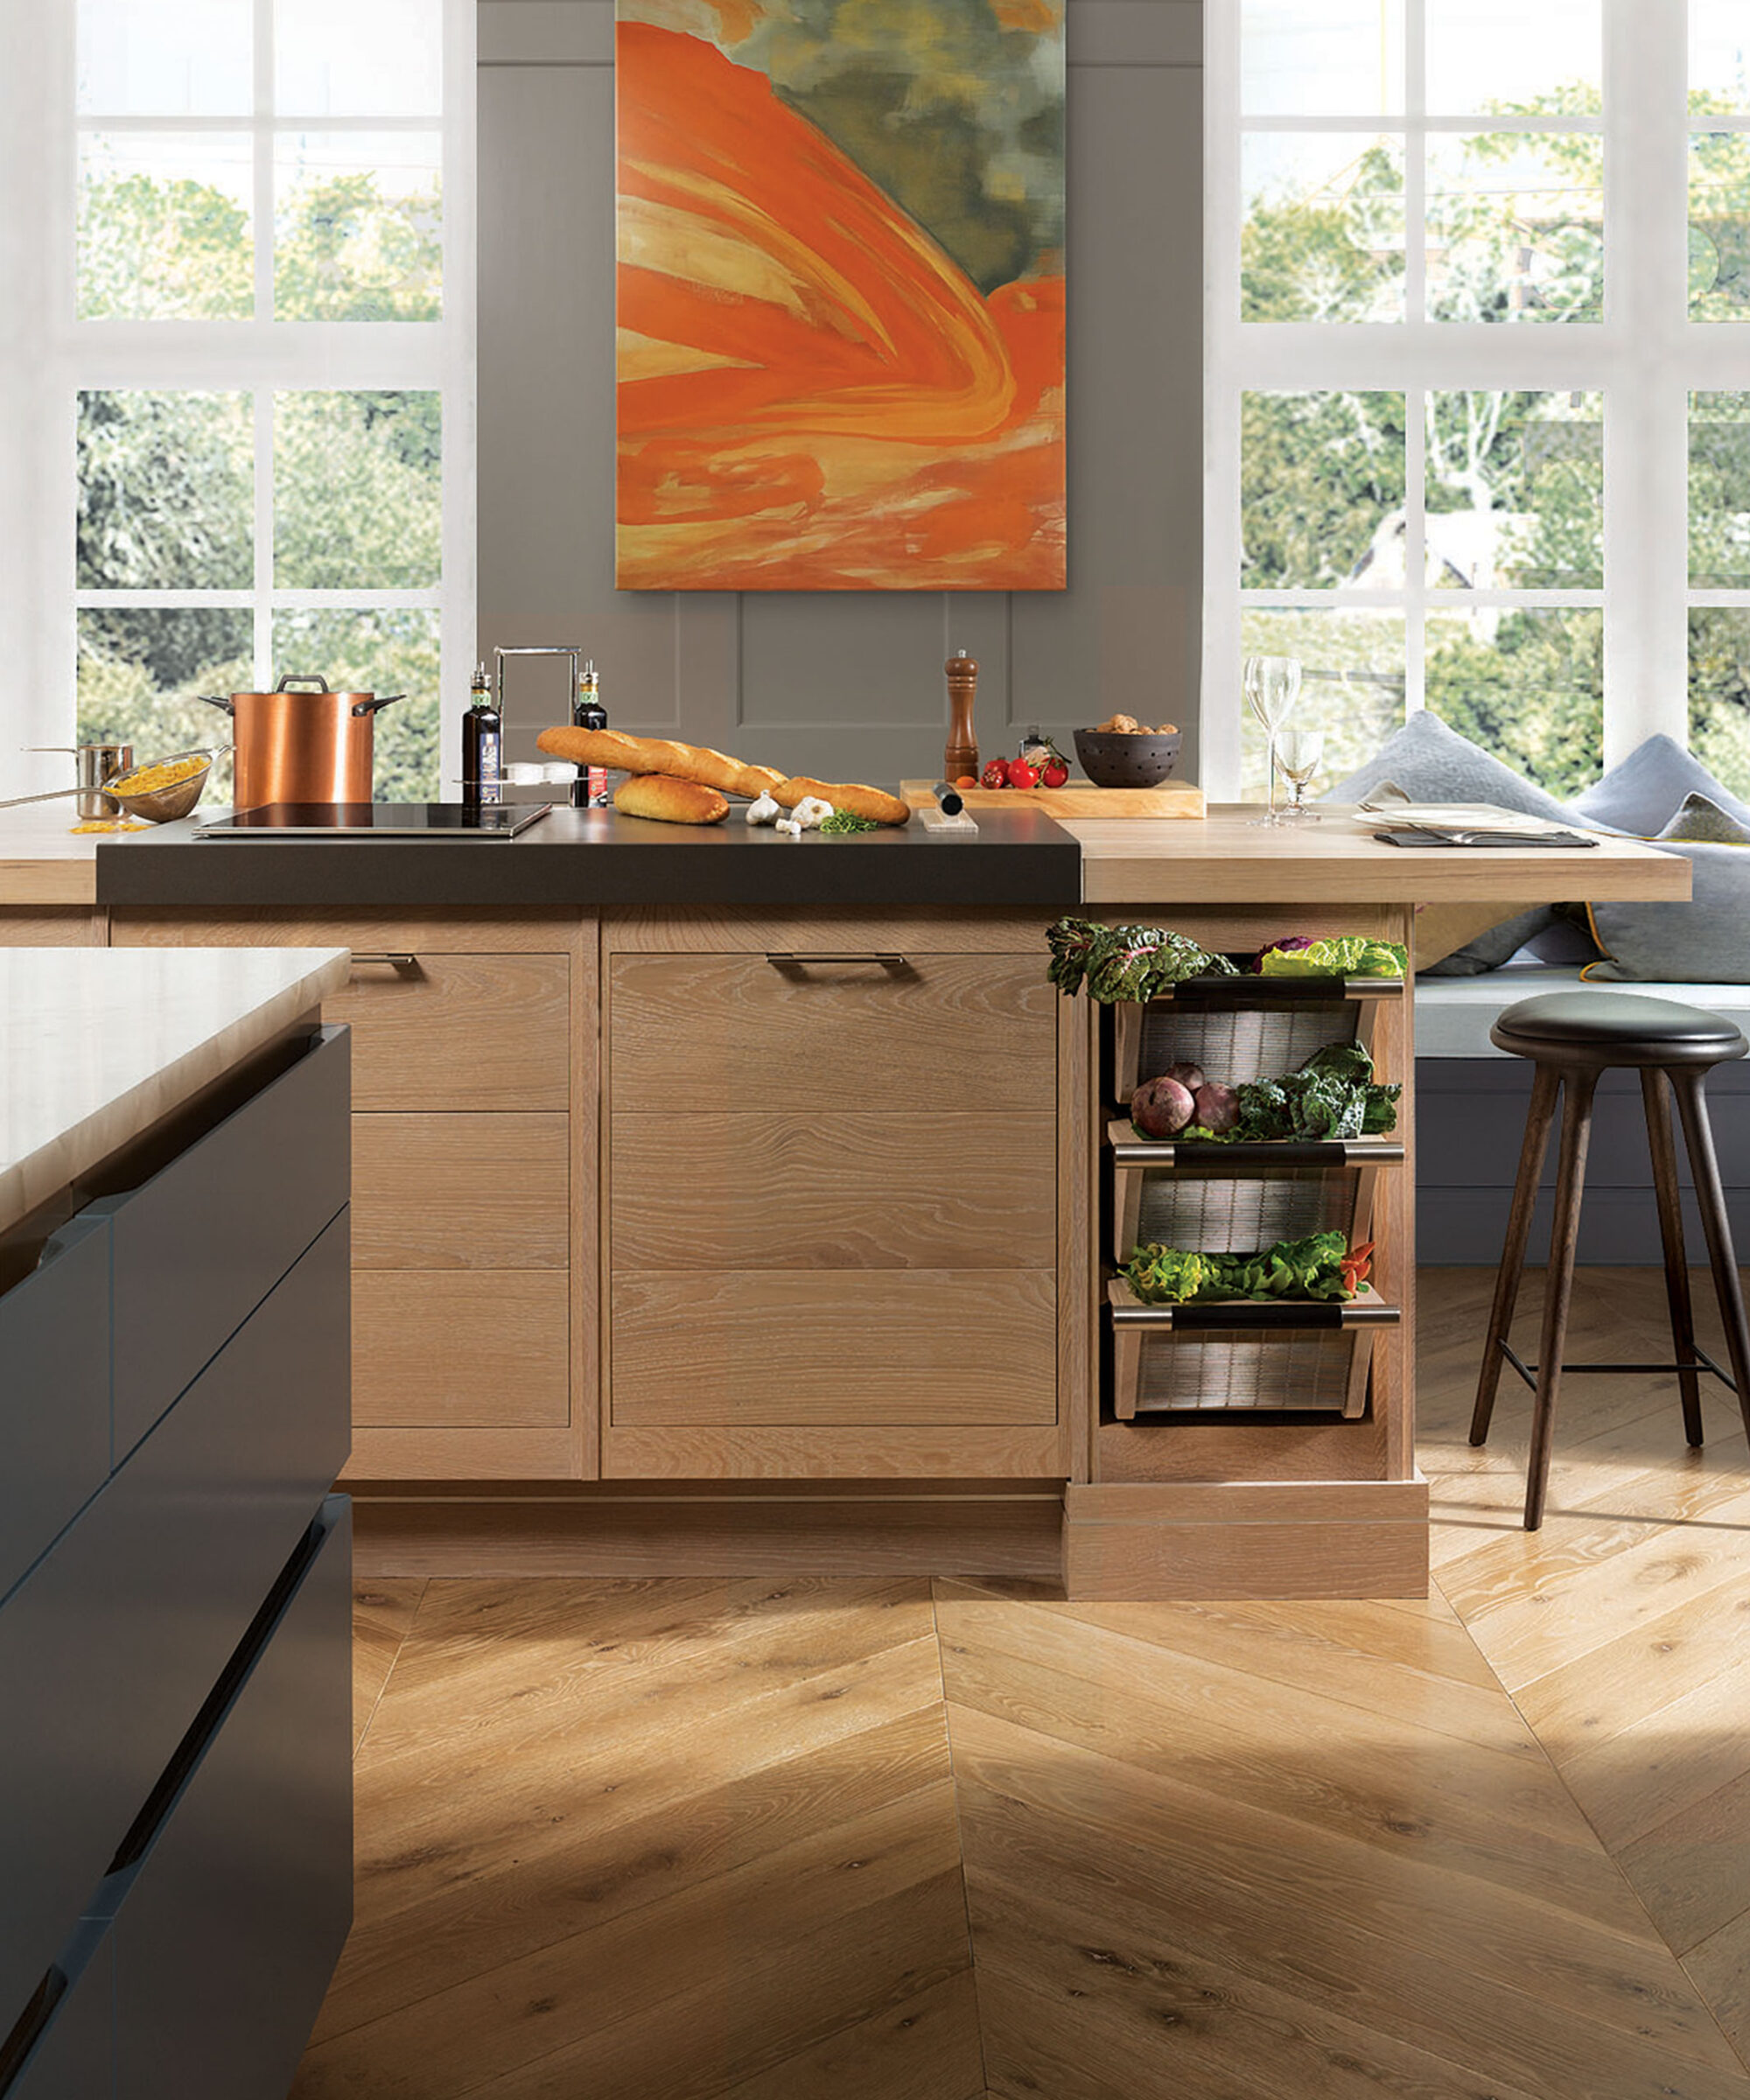 A Brasseire collection kitchen by Smallbone with pull out metal vegetable racks.jpg